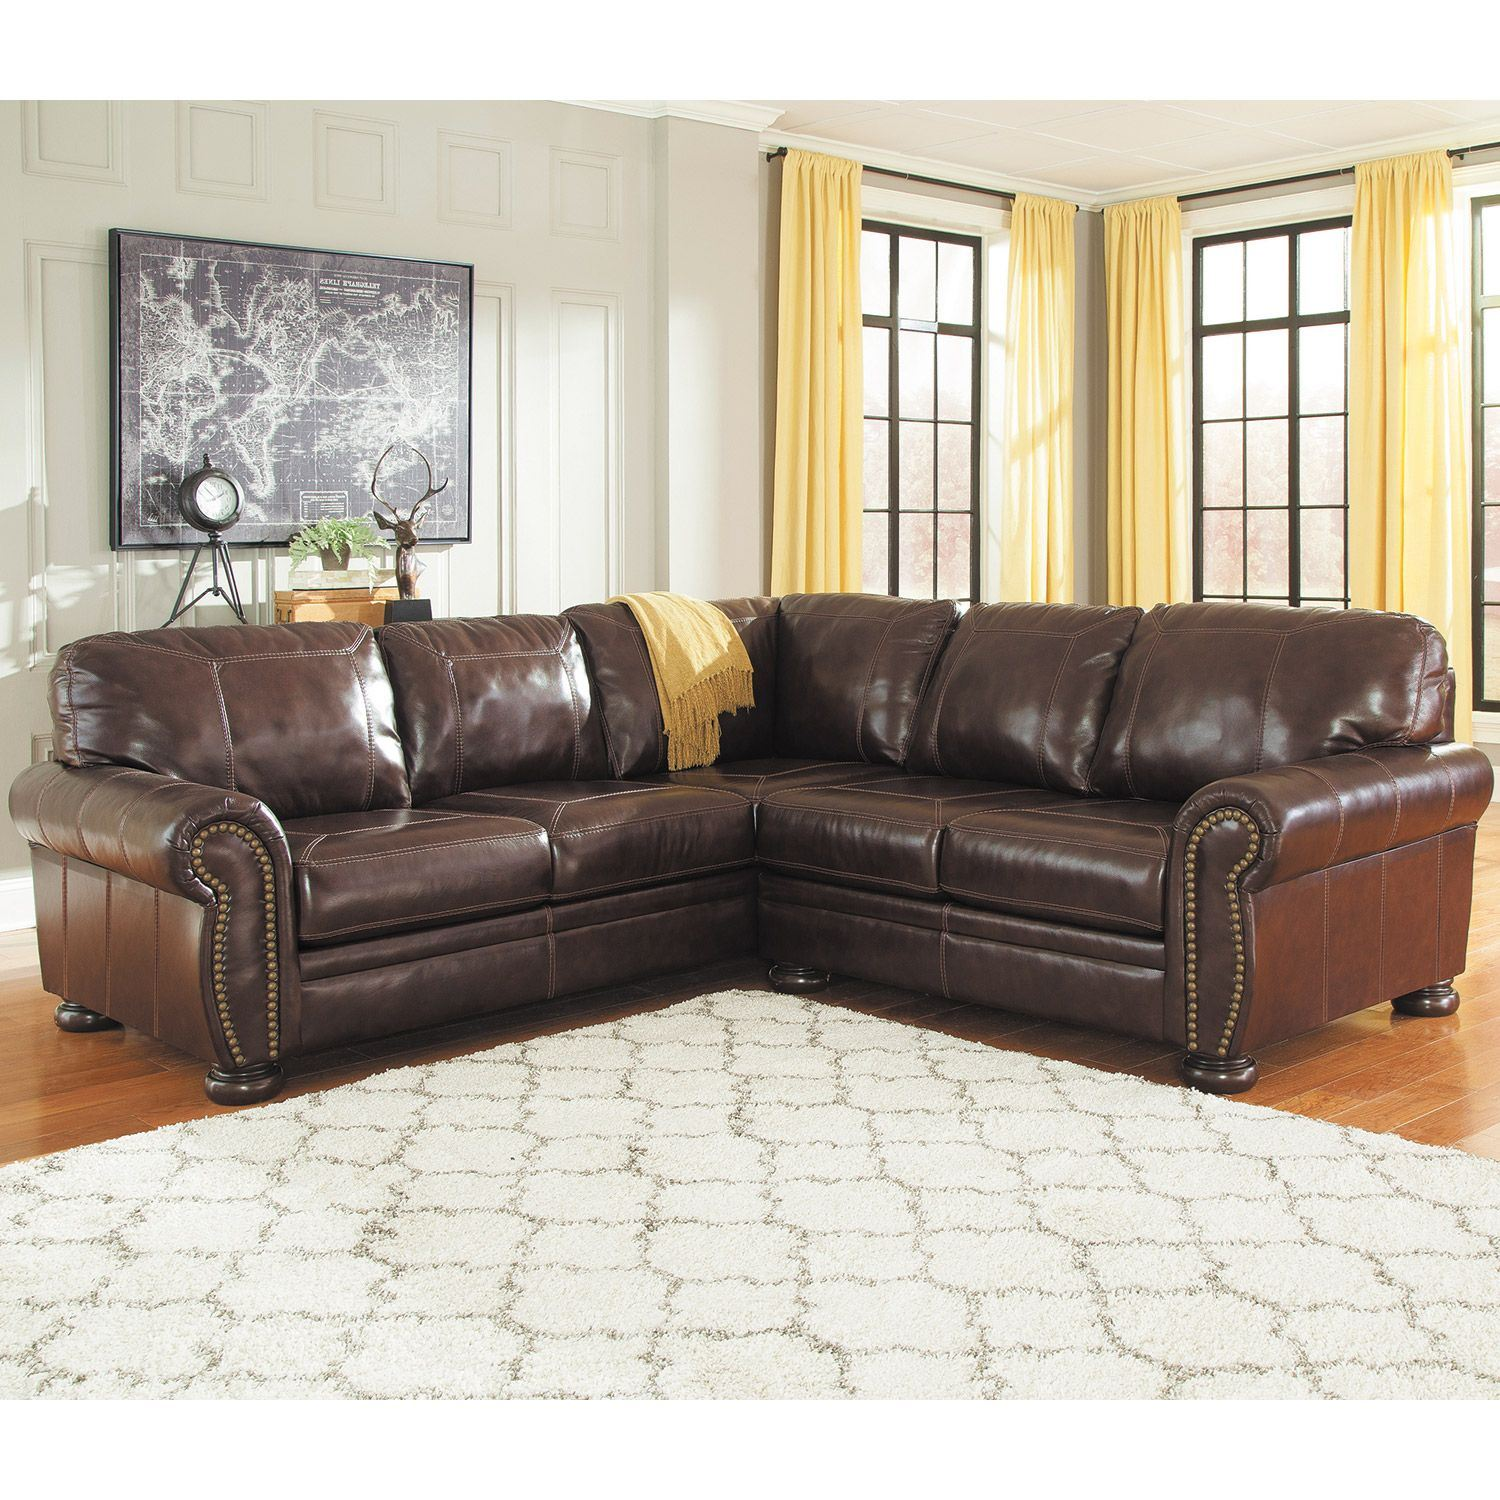 2PC LAF Sofa Leather Sectional 0H0-504LS-2PC